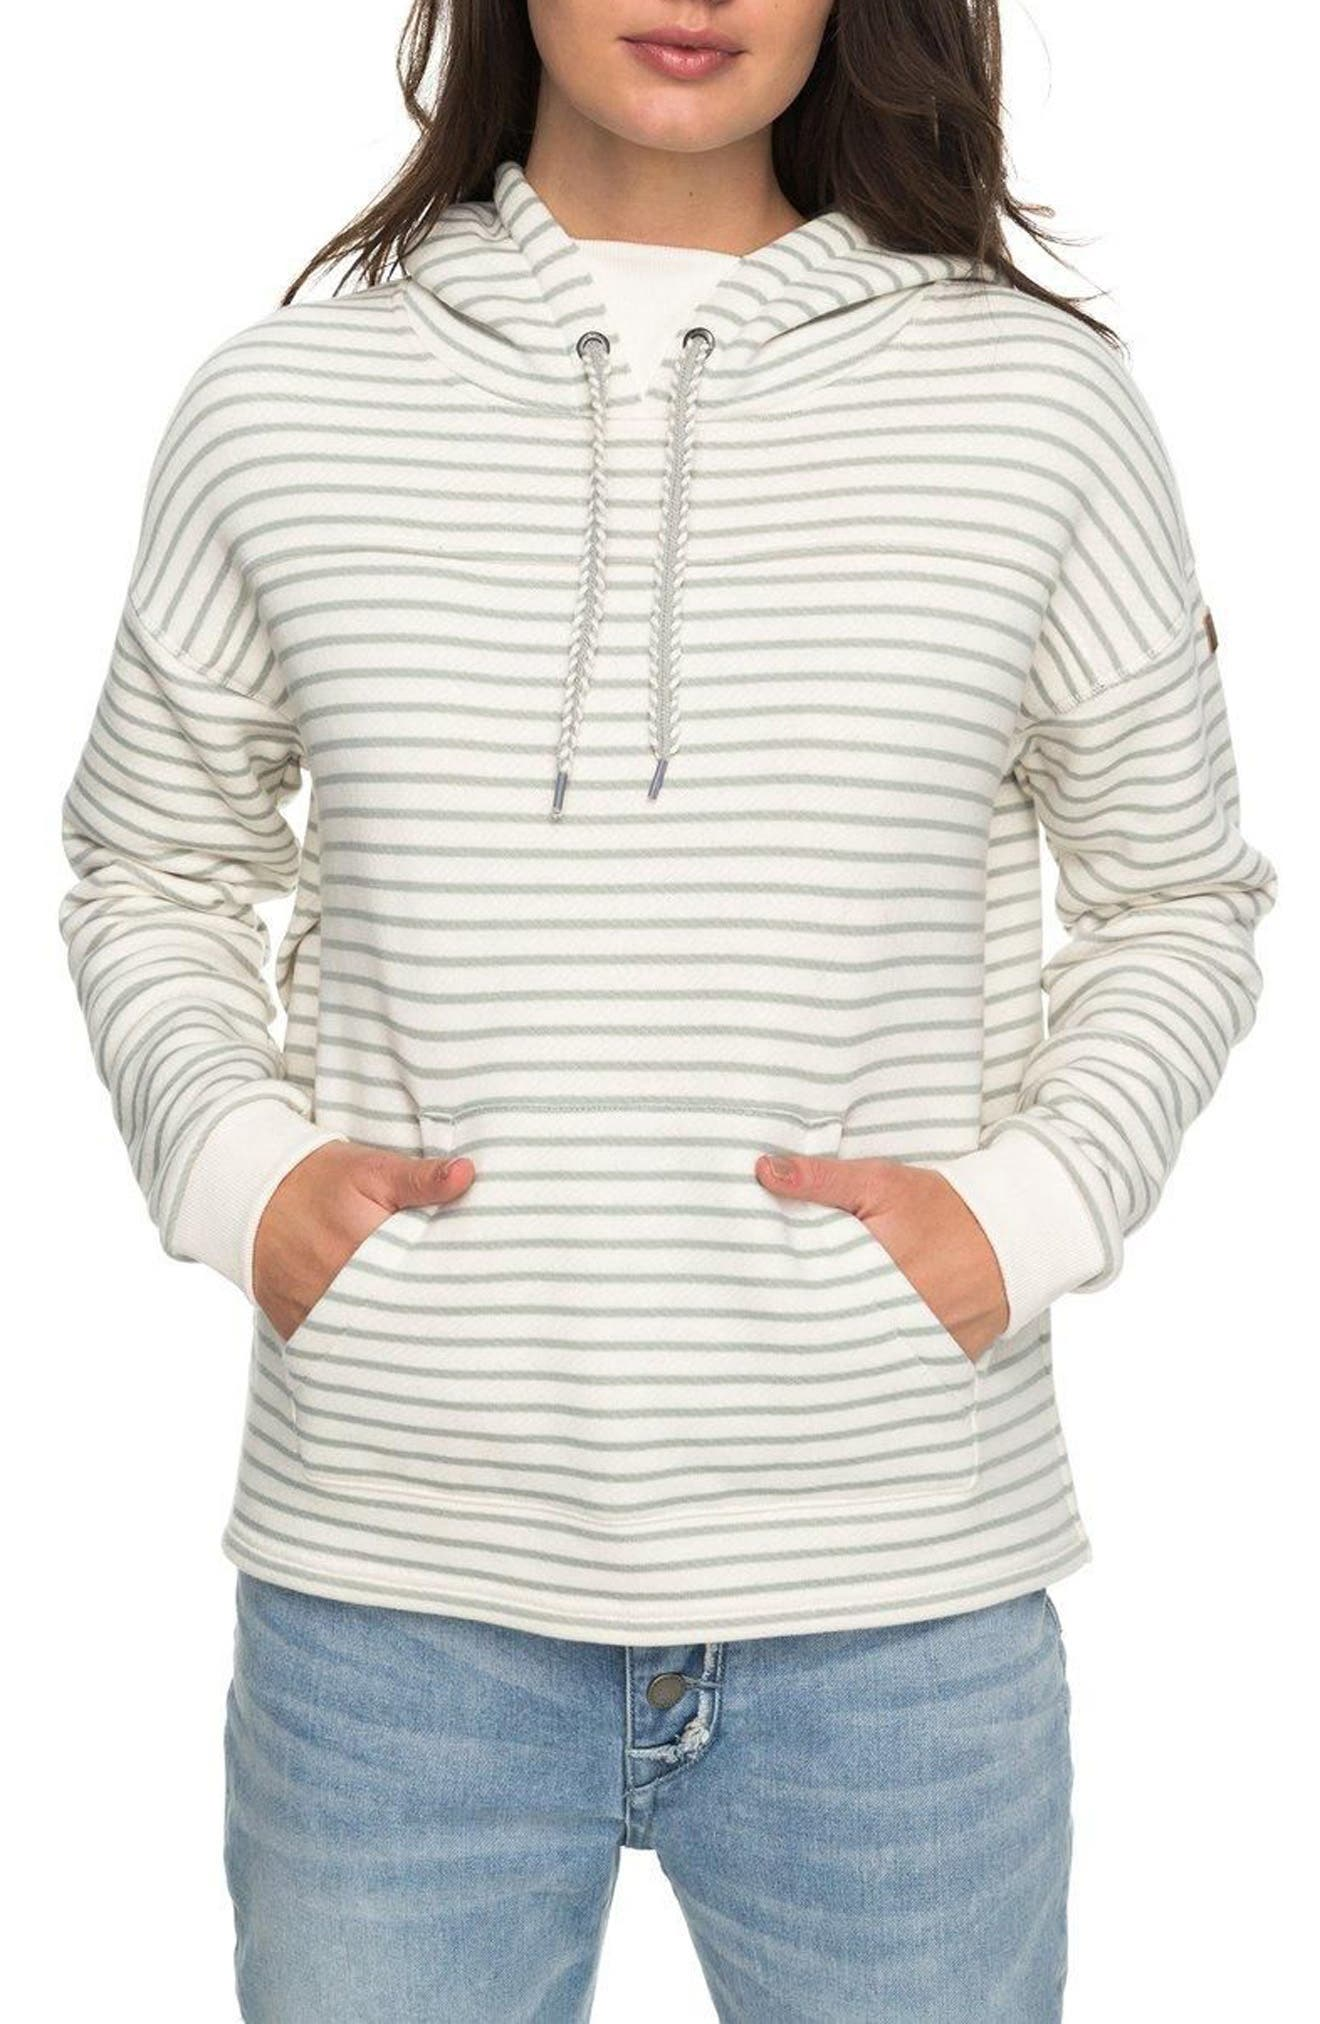 Alternate Image 1 Selected - Roxy Greatest Glory Stripe Hoodie